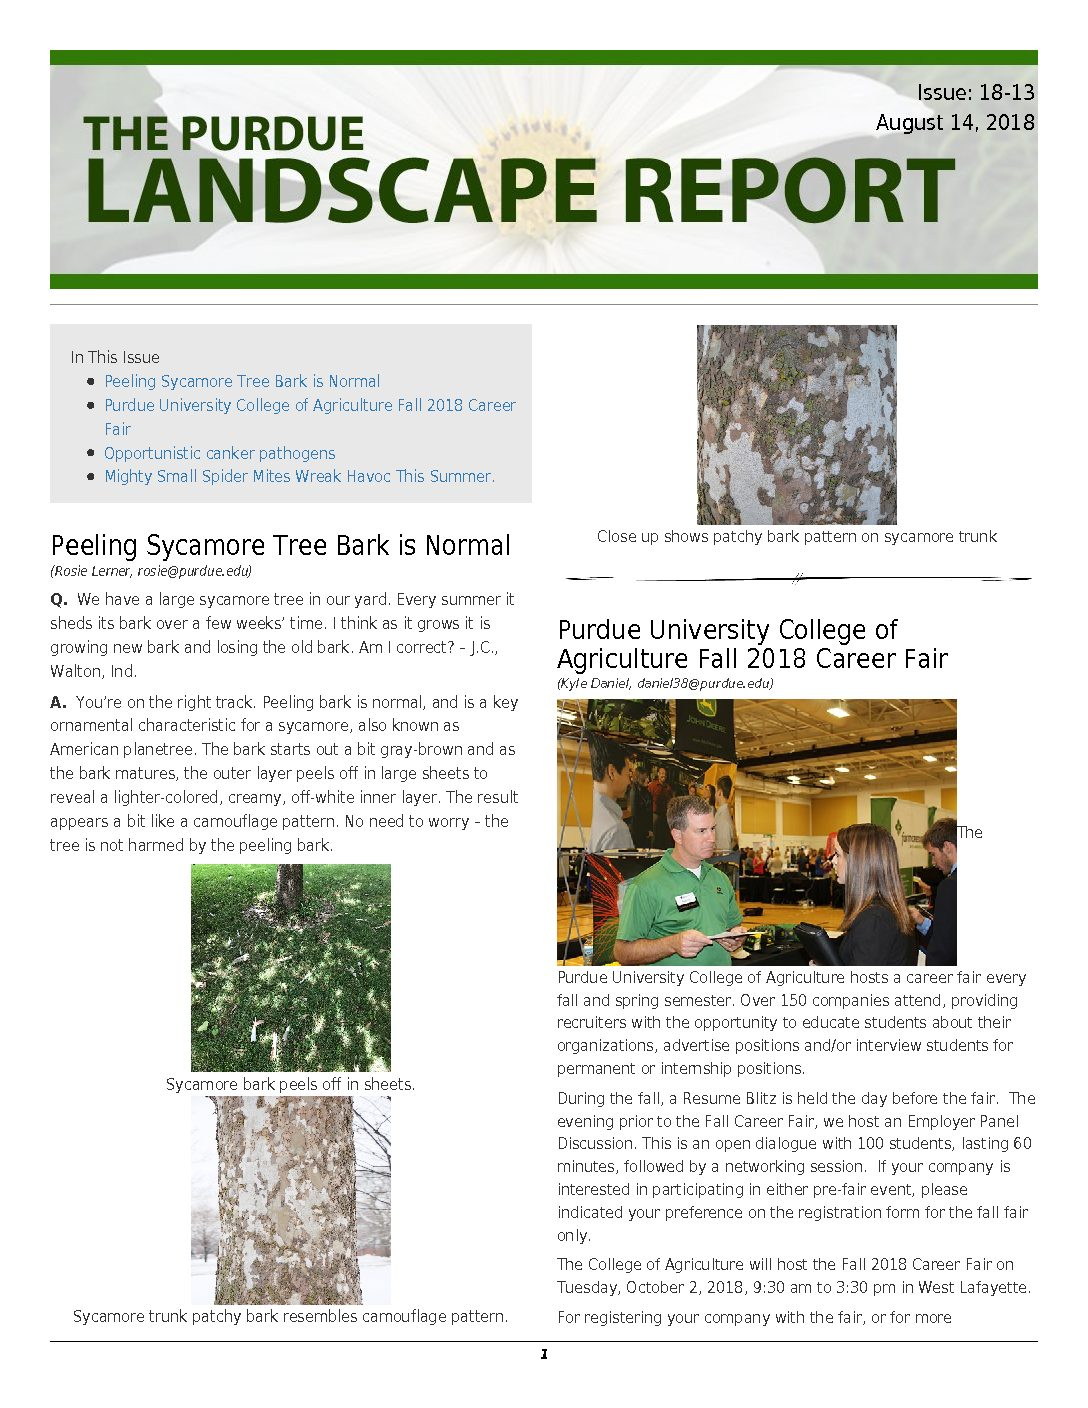 18-13 Archives - Purdue Landscape Report